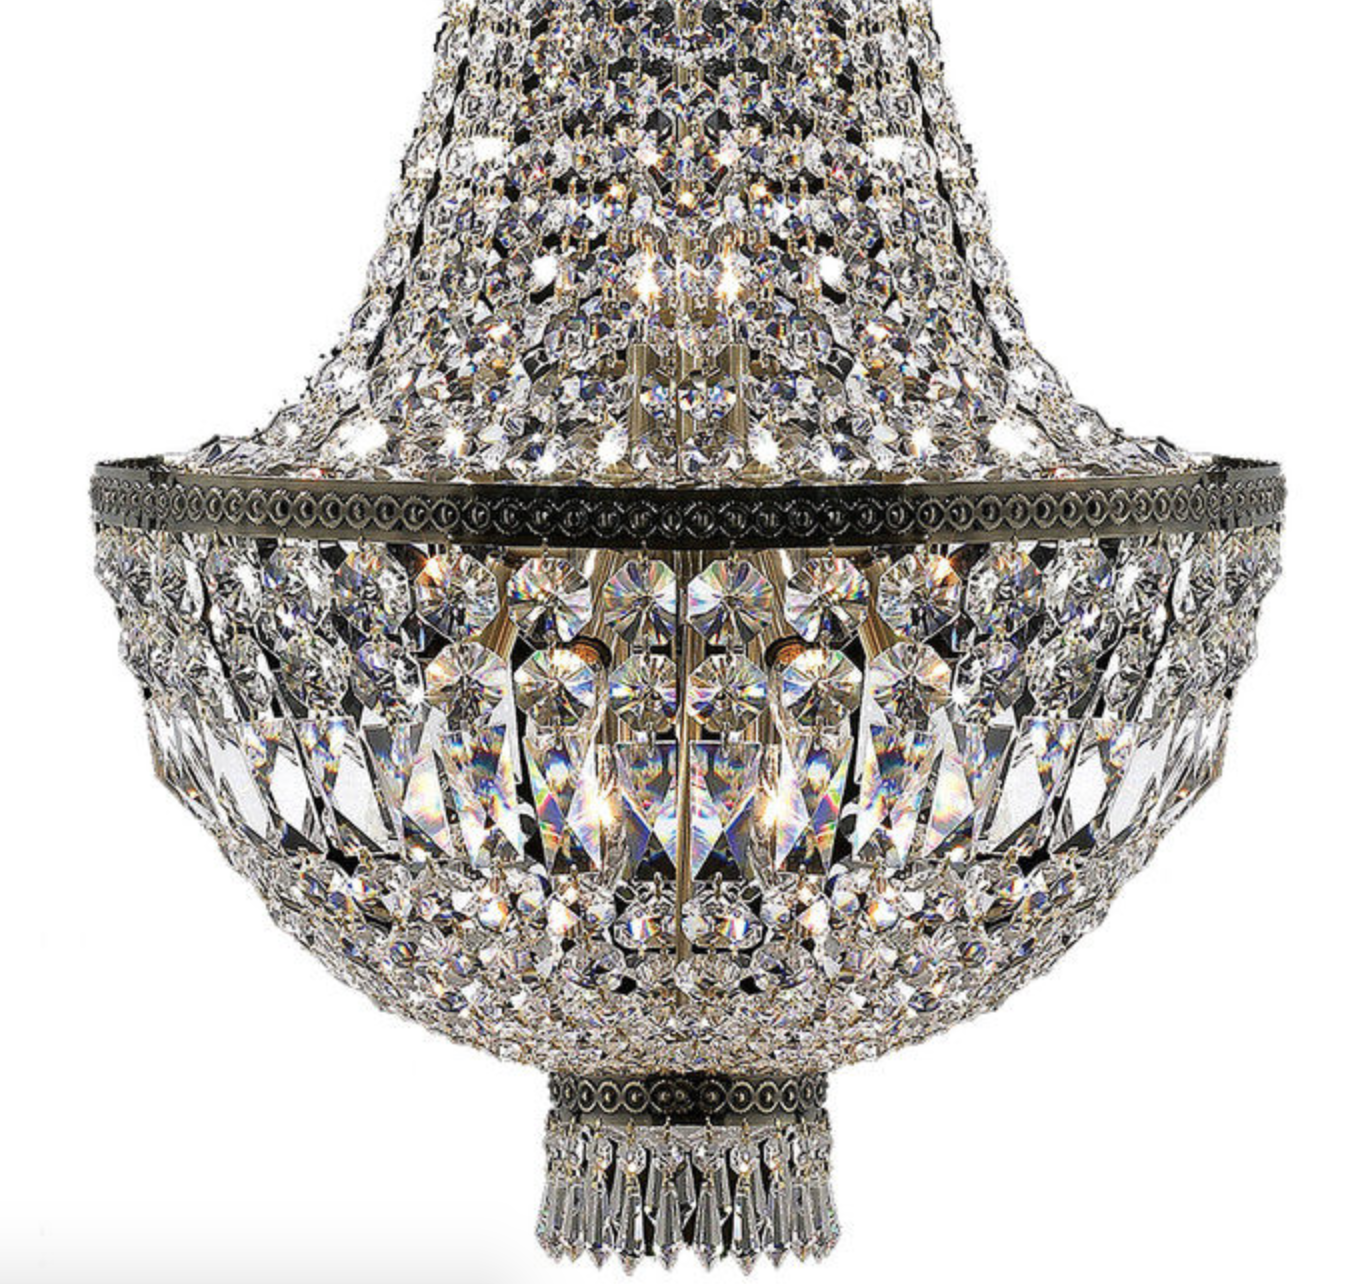 French Rockstar Crystal Basket Chandelier